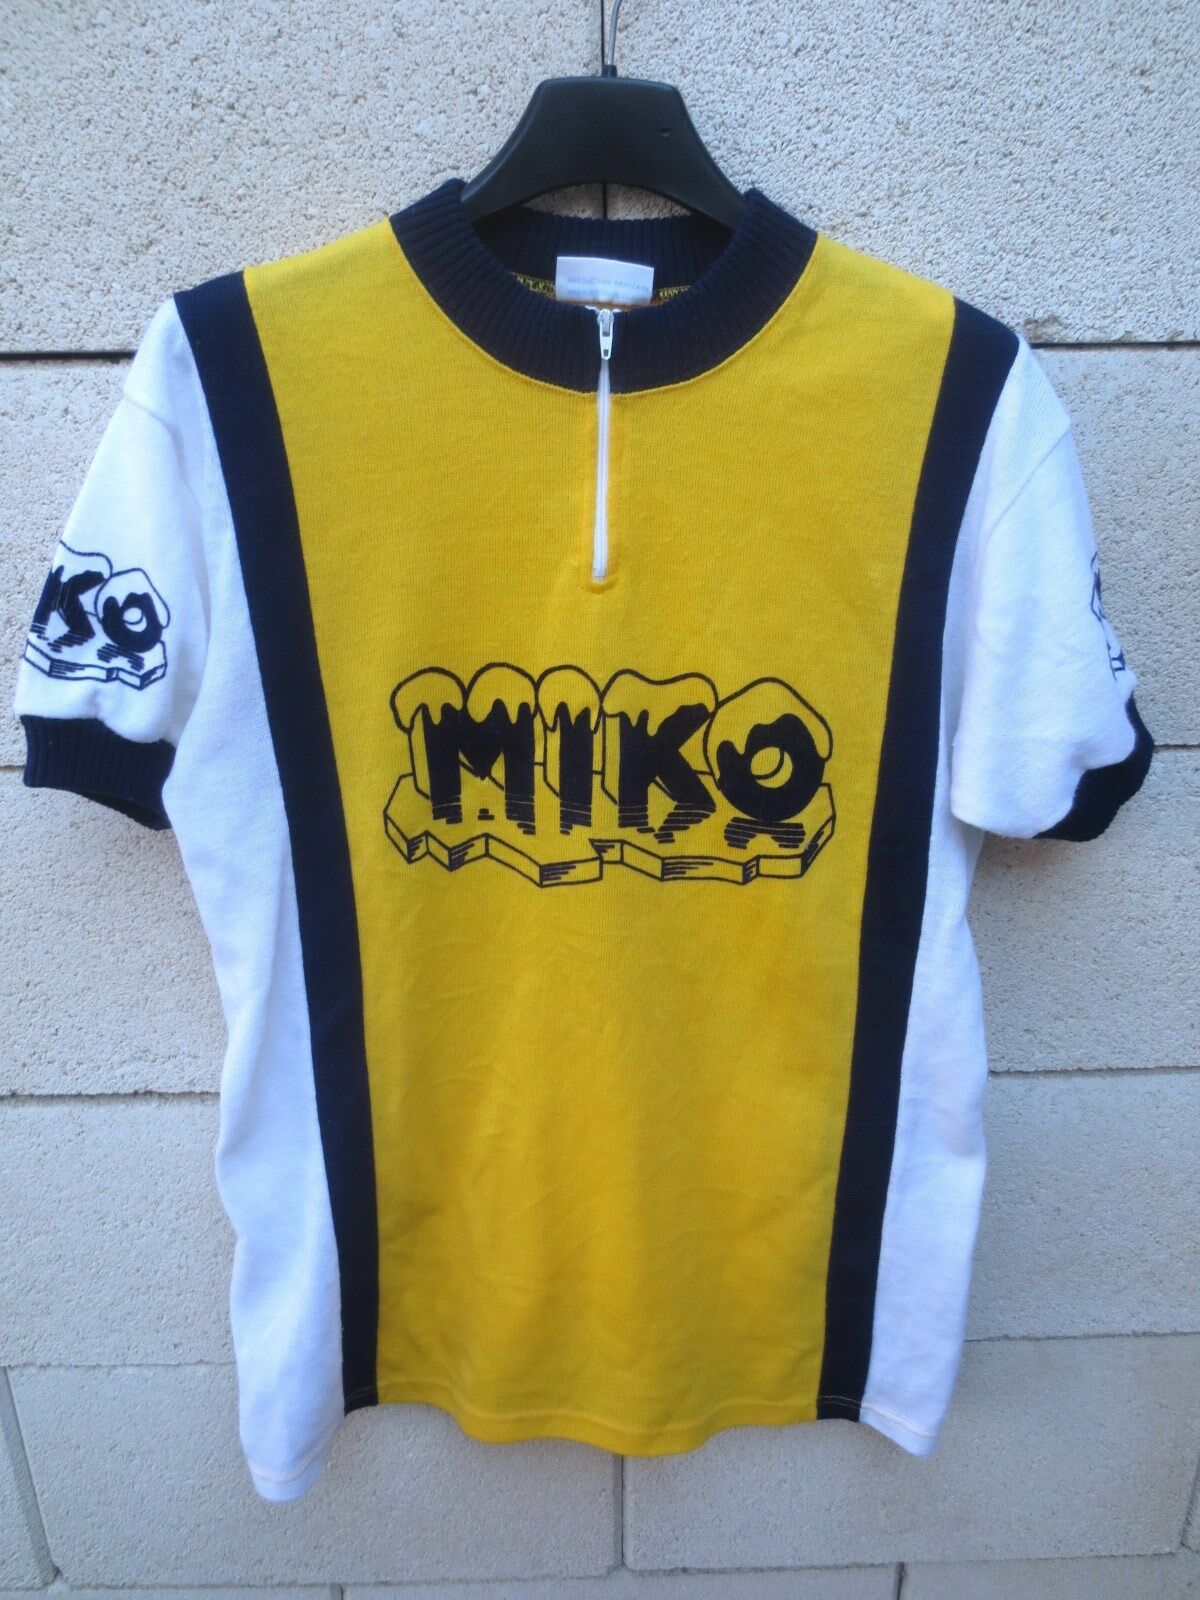 Gelb jersey cyclist miko years 70 shirt leotard vintage shirt maglia m